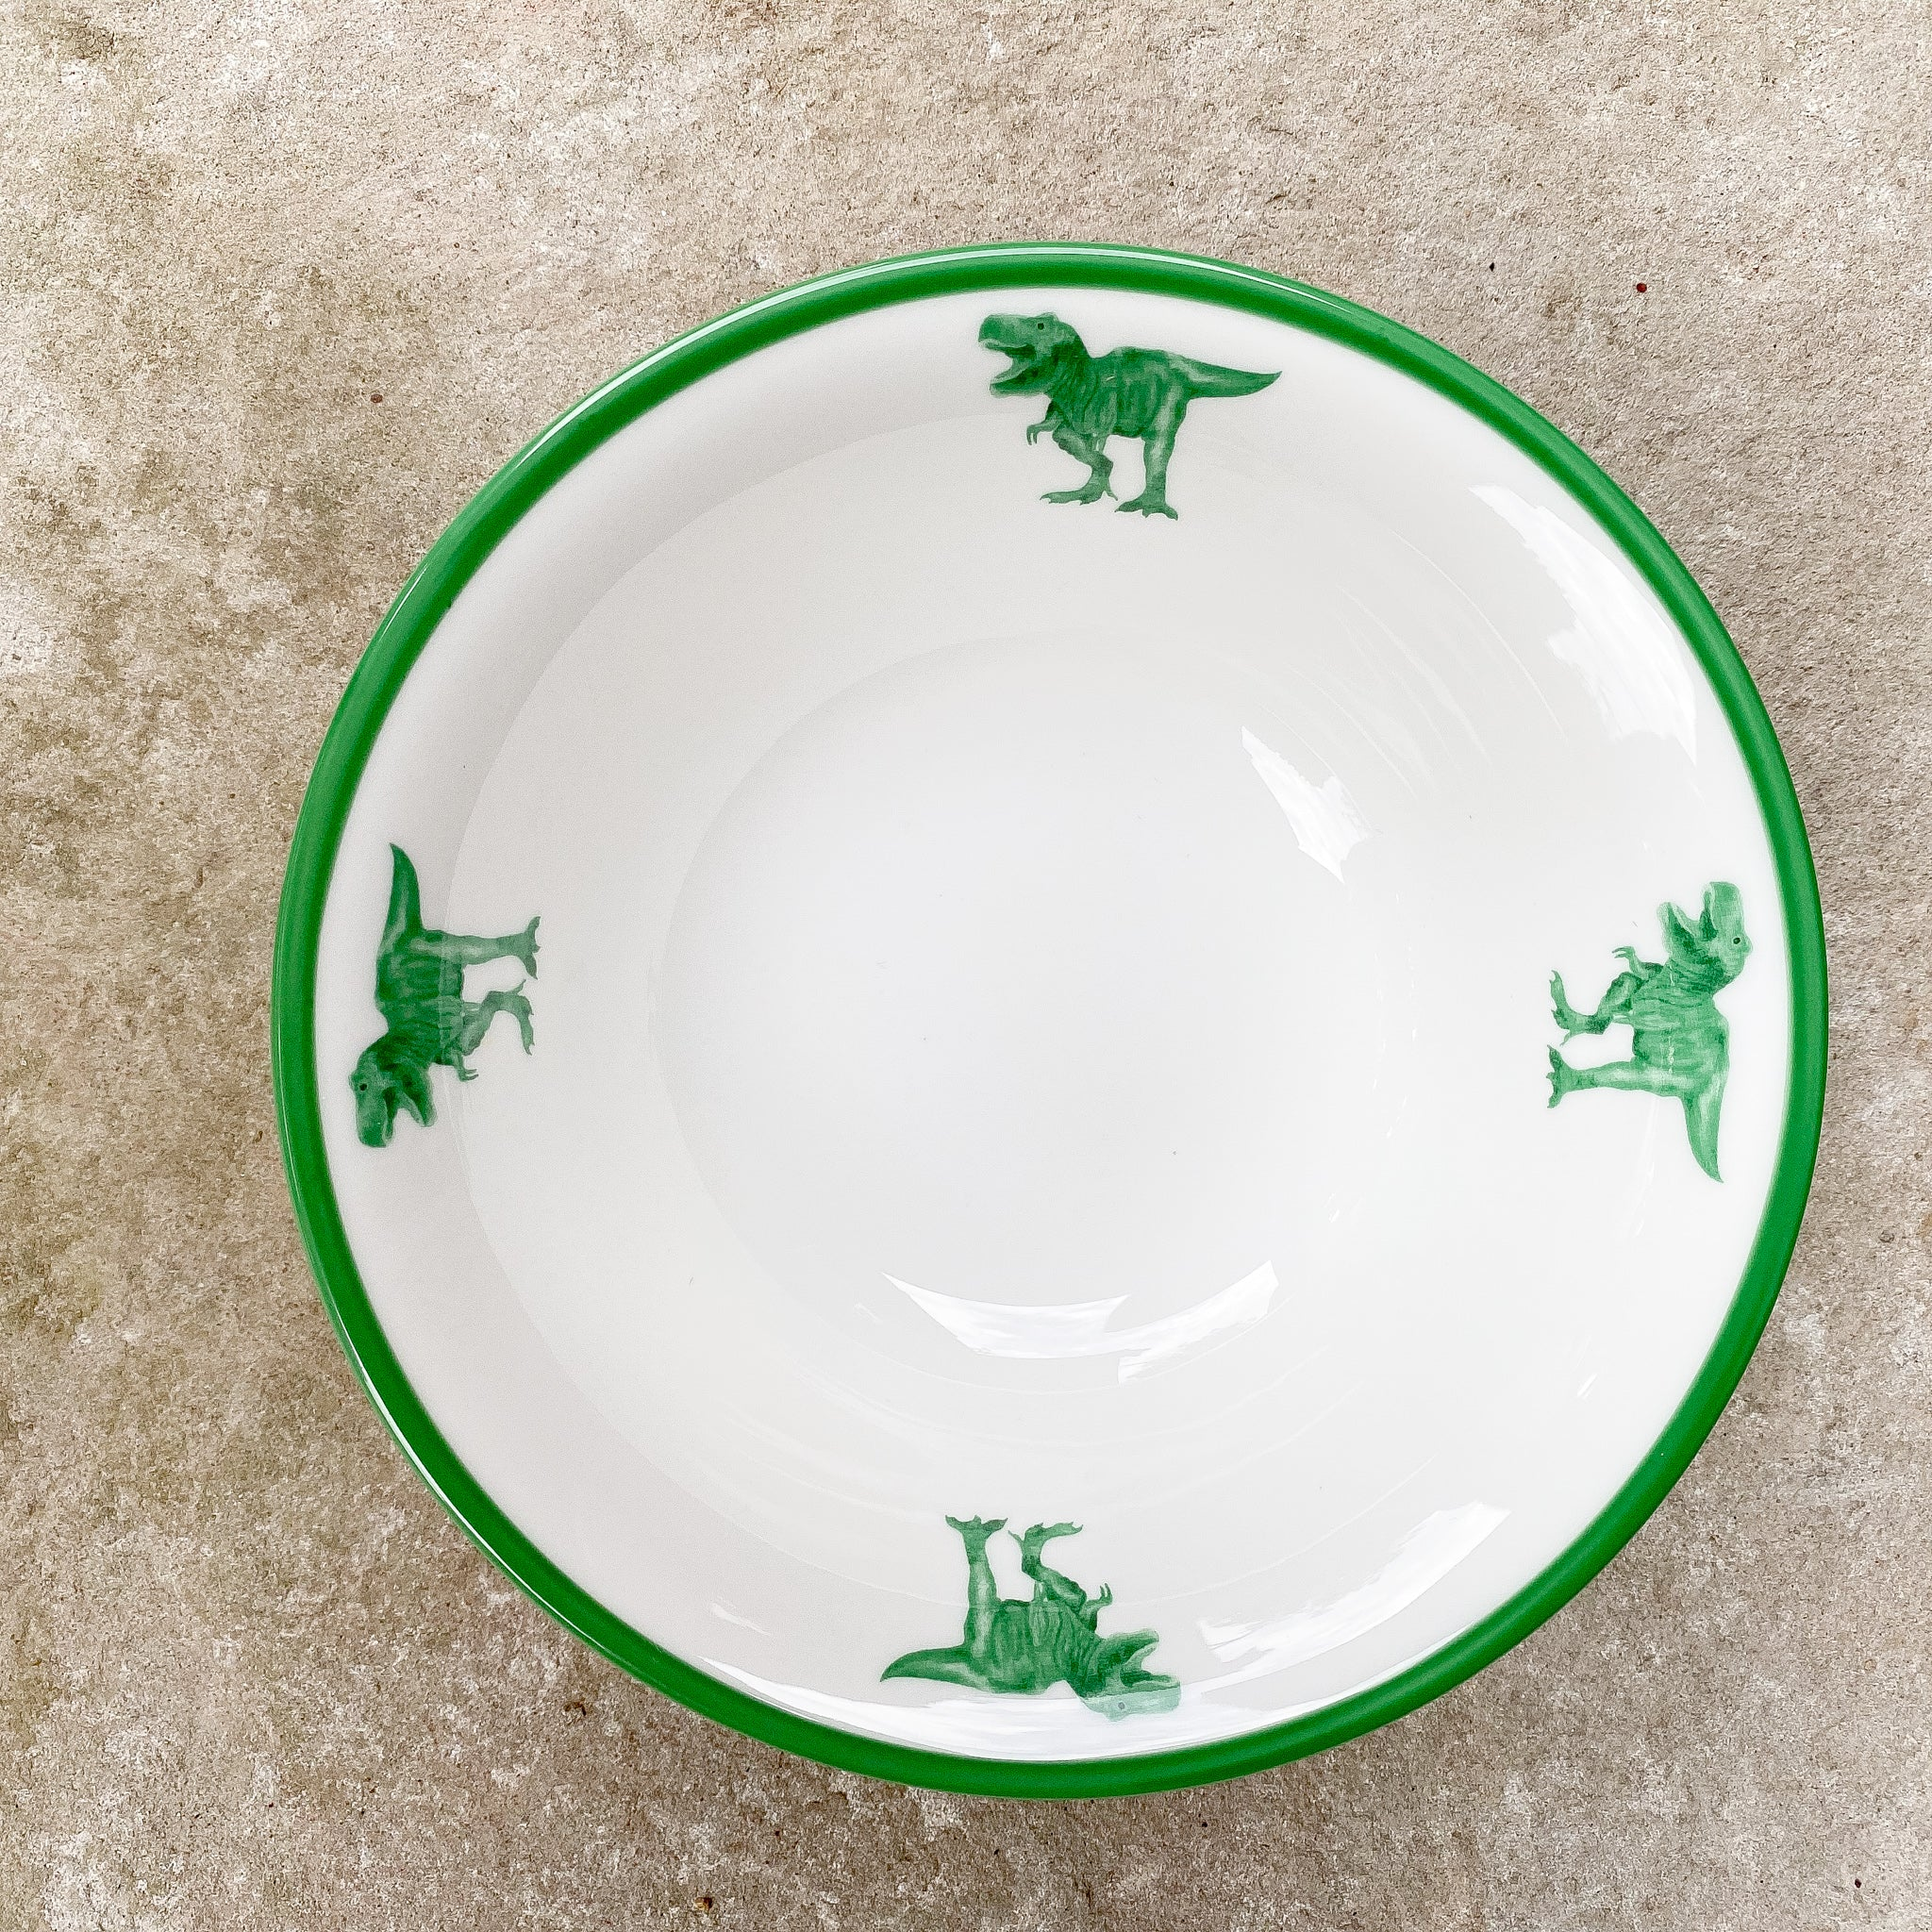 T-Rex dinosaur crockery and tableware: dinosaur cereal bowl, start your dinosaur collection to make your dinosaur dinnerware set.